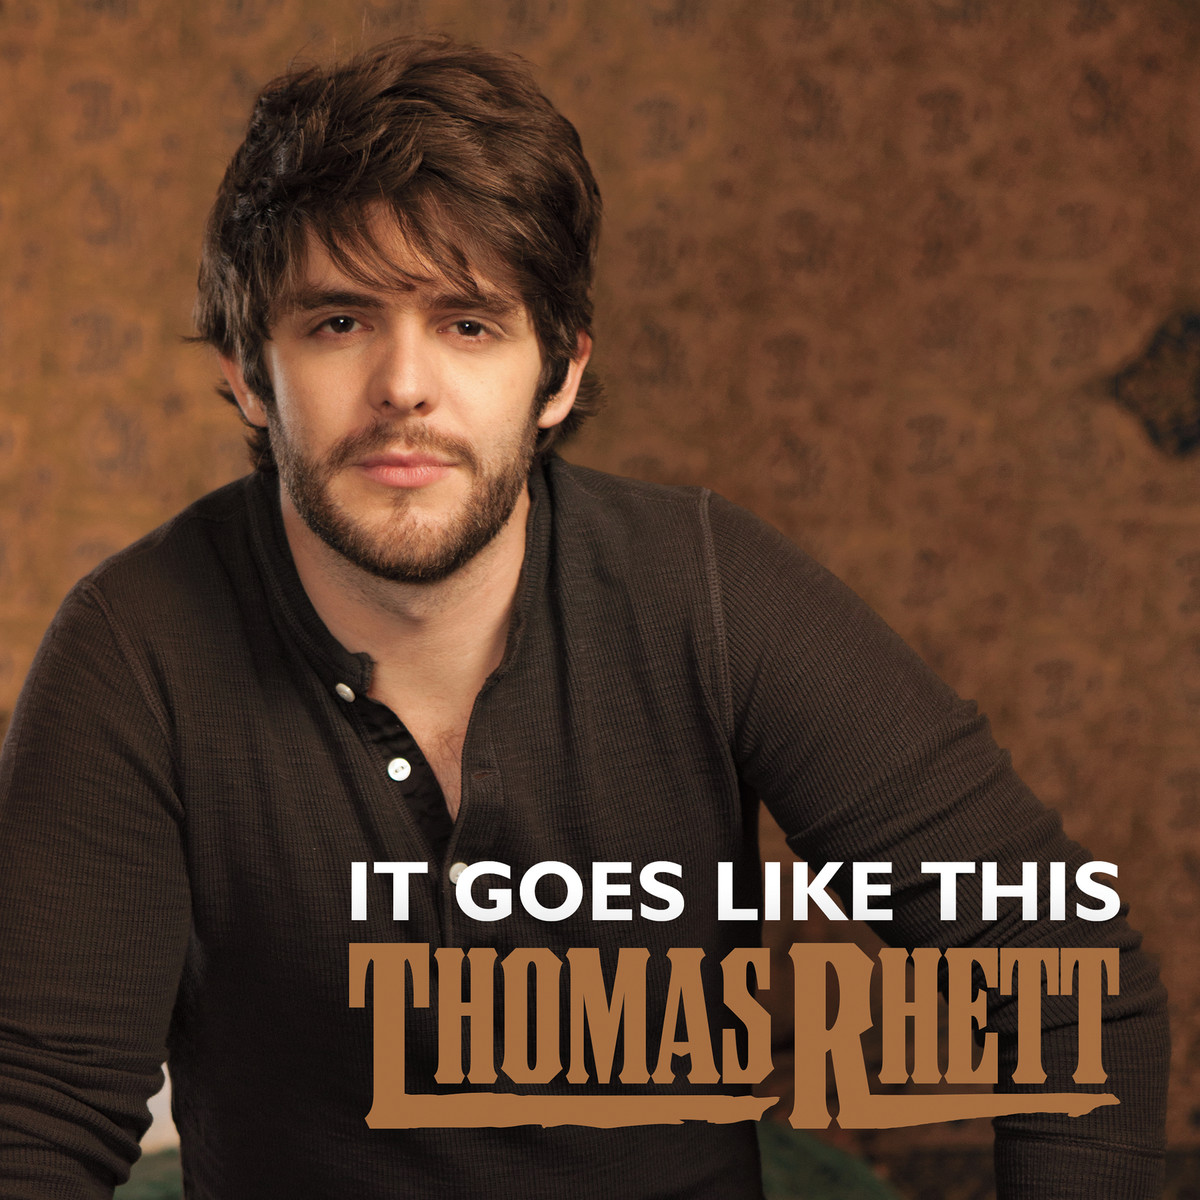 Thomas Rhett It Goes Like This cover art